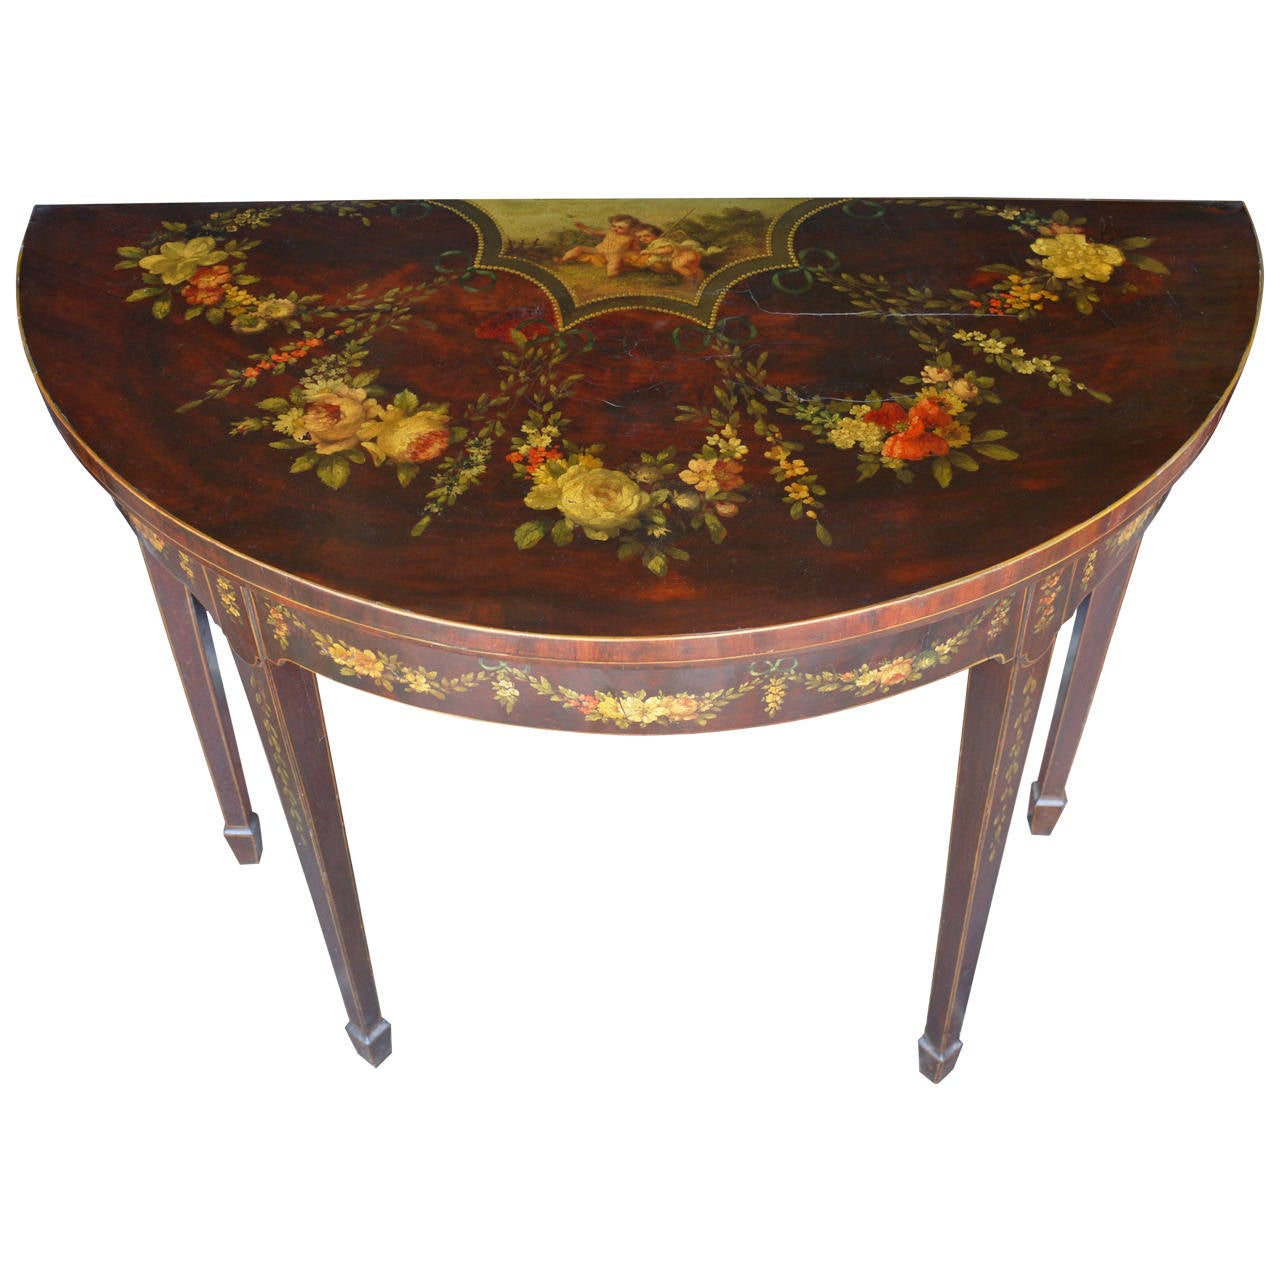 George III Paint Decorated Demilune Game Table, circa 1780